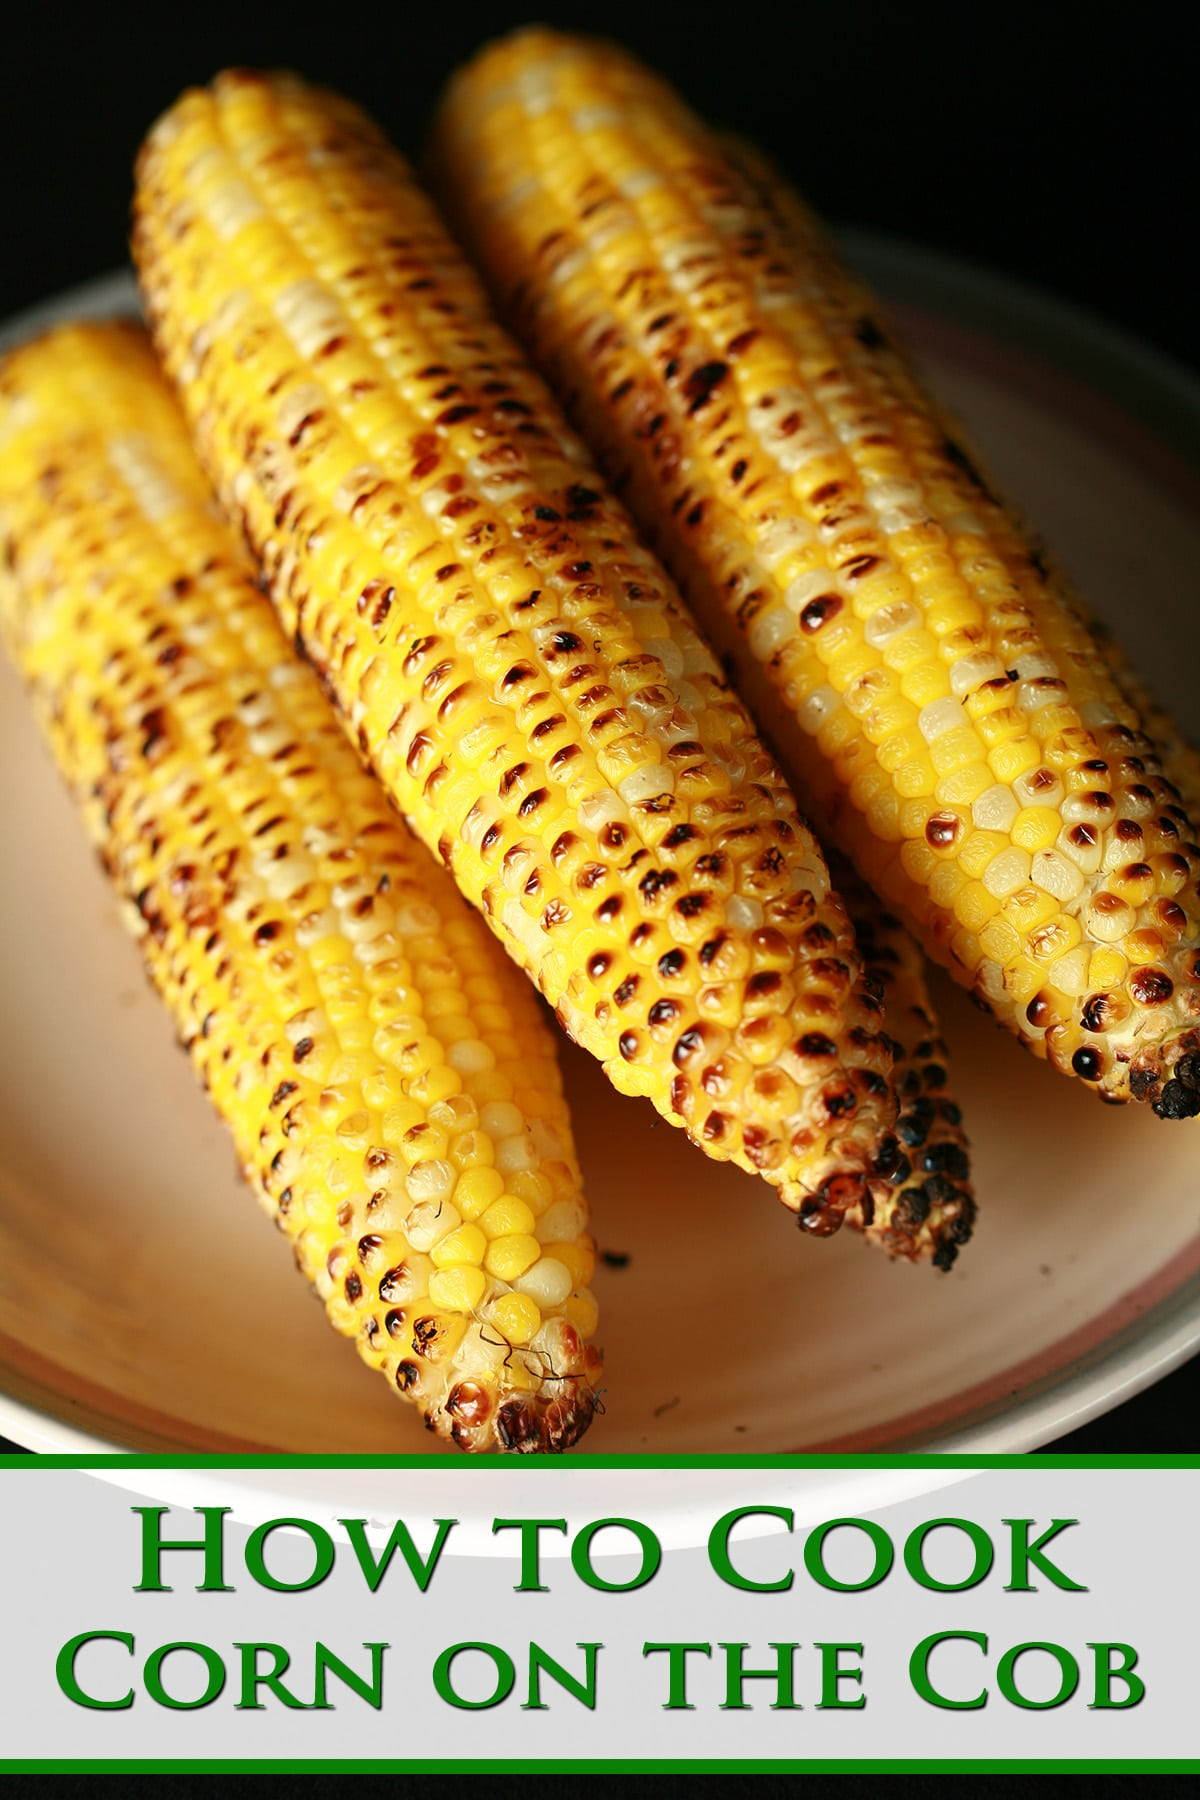 A pile of 5 ears of grilled corn on the cob, on a beige plate. Green text says How to Cook Corn on the Cob.